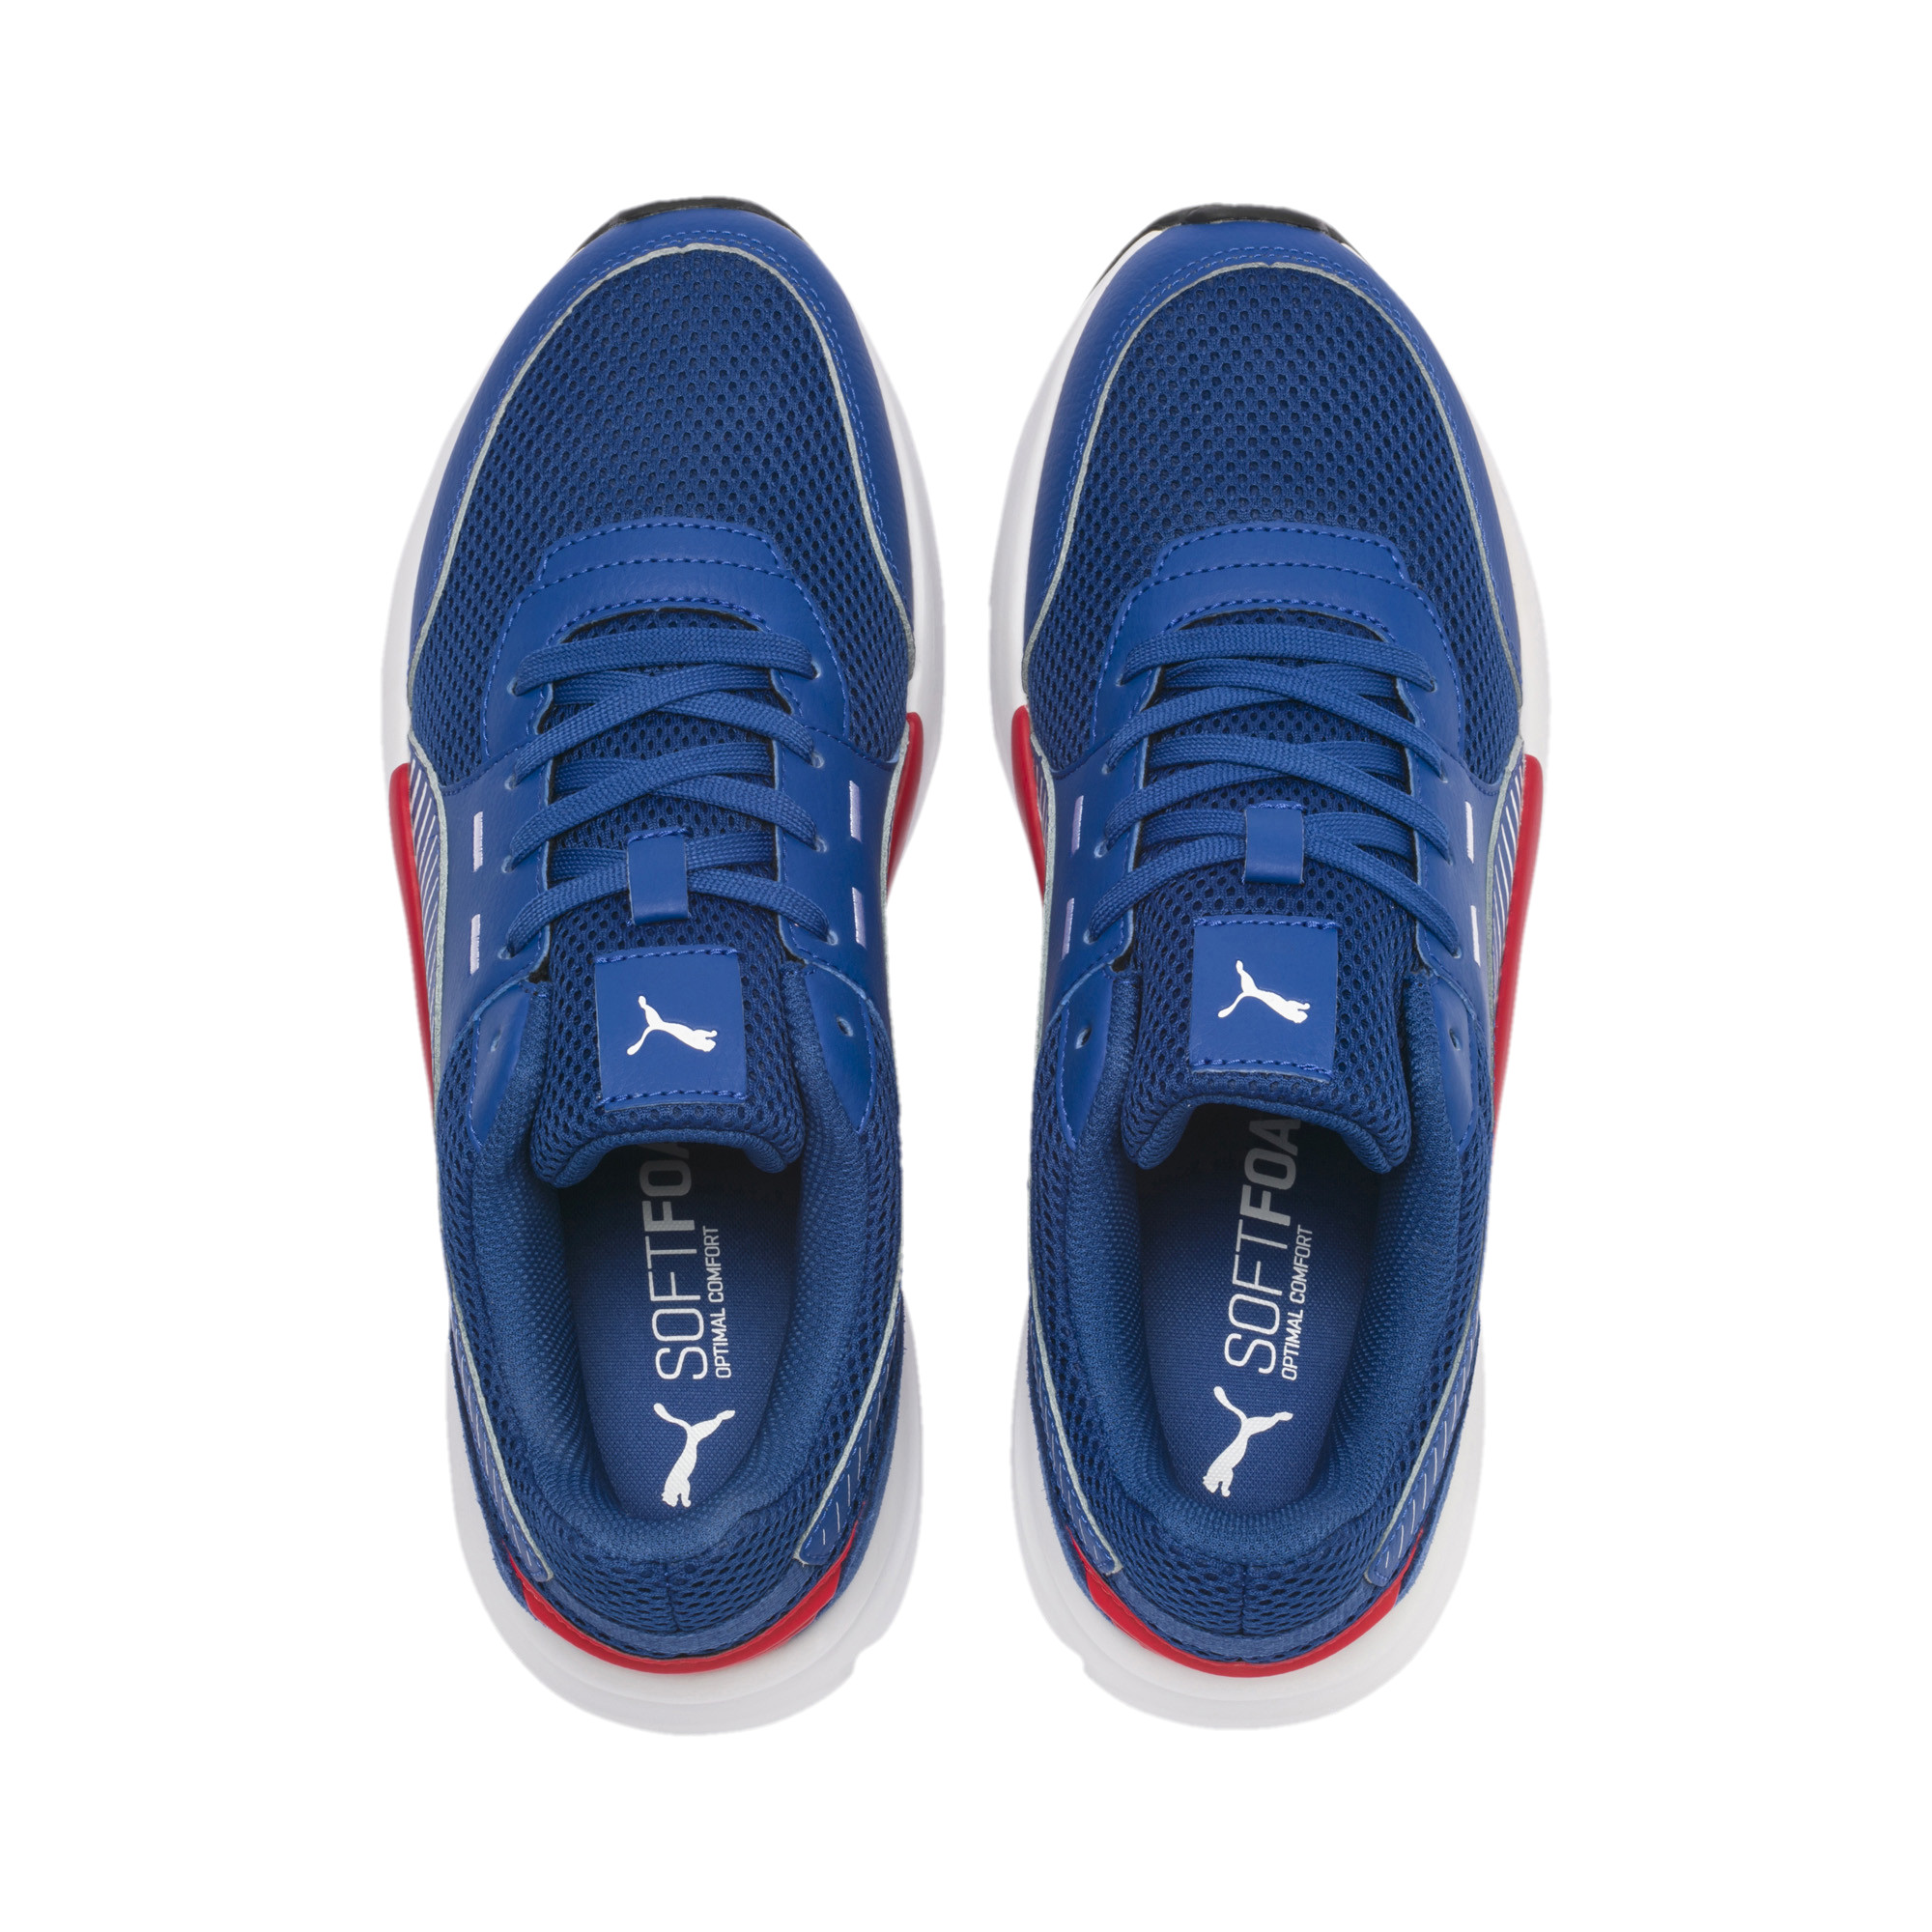 PUMA-Future-Runner-Premium-Men-039-s-Running-Shoes-Men-Shoe-Basics thumbnail 19